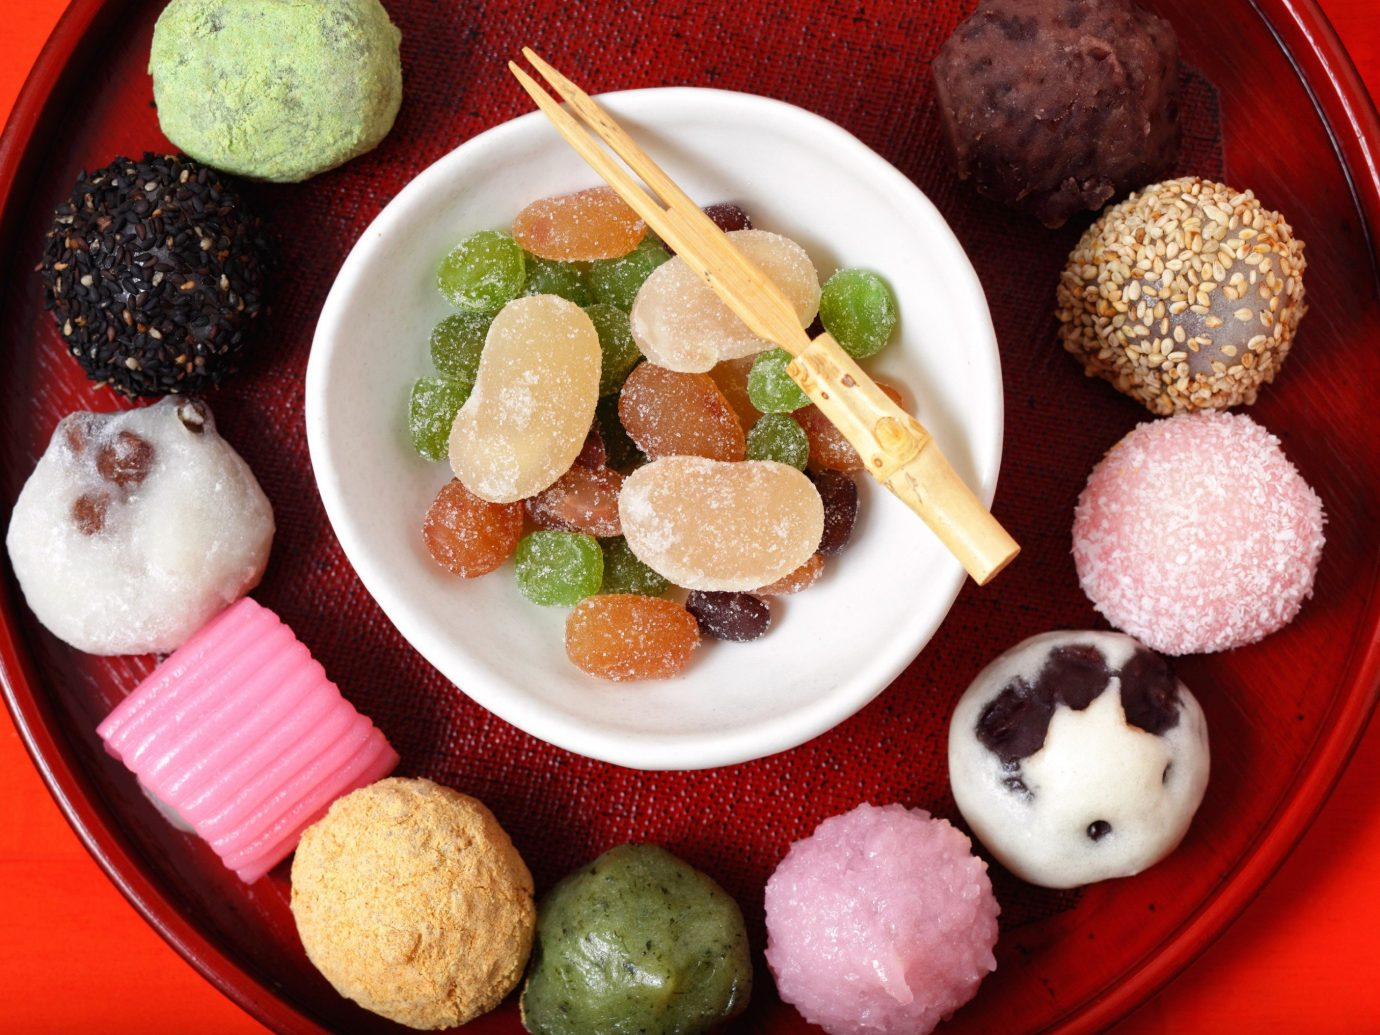 Food + Drink food plate dish cuisine meal asian food fruit falafel hors d oeuvre breakfast